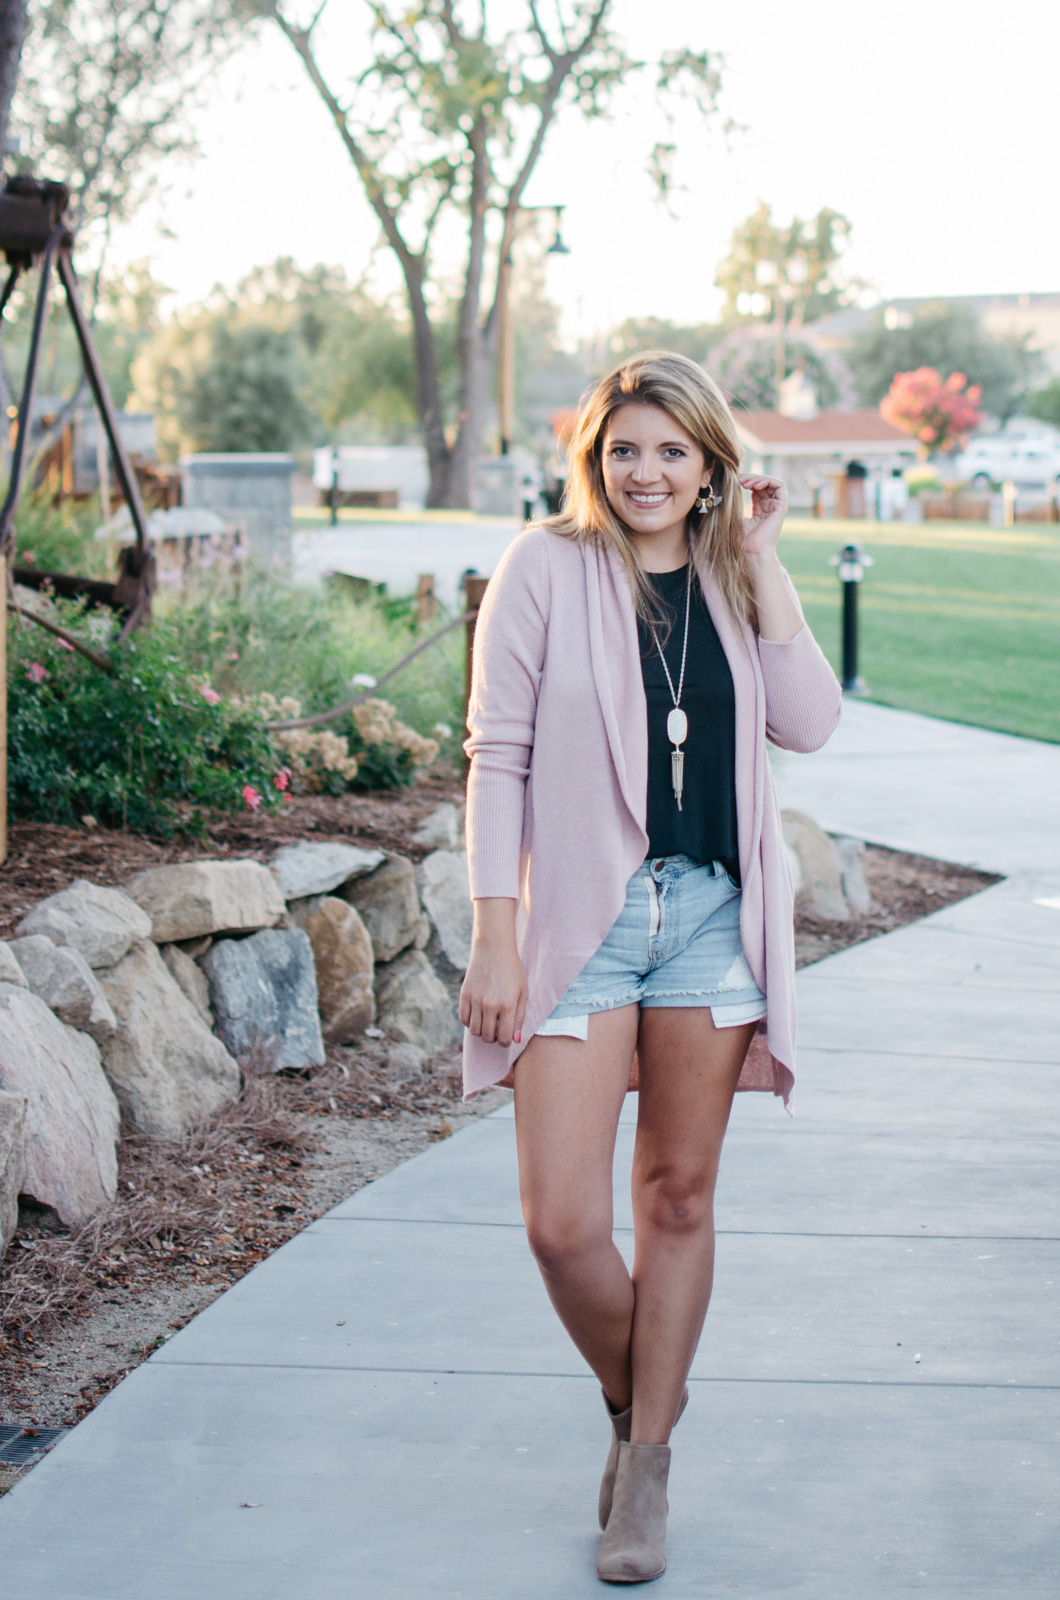 how to wear a cardigan for summer - summer to fall transitional outfit idea | bylaurenm.com